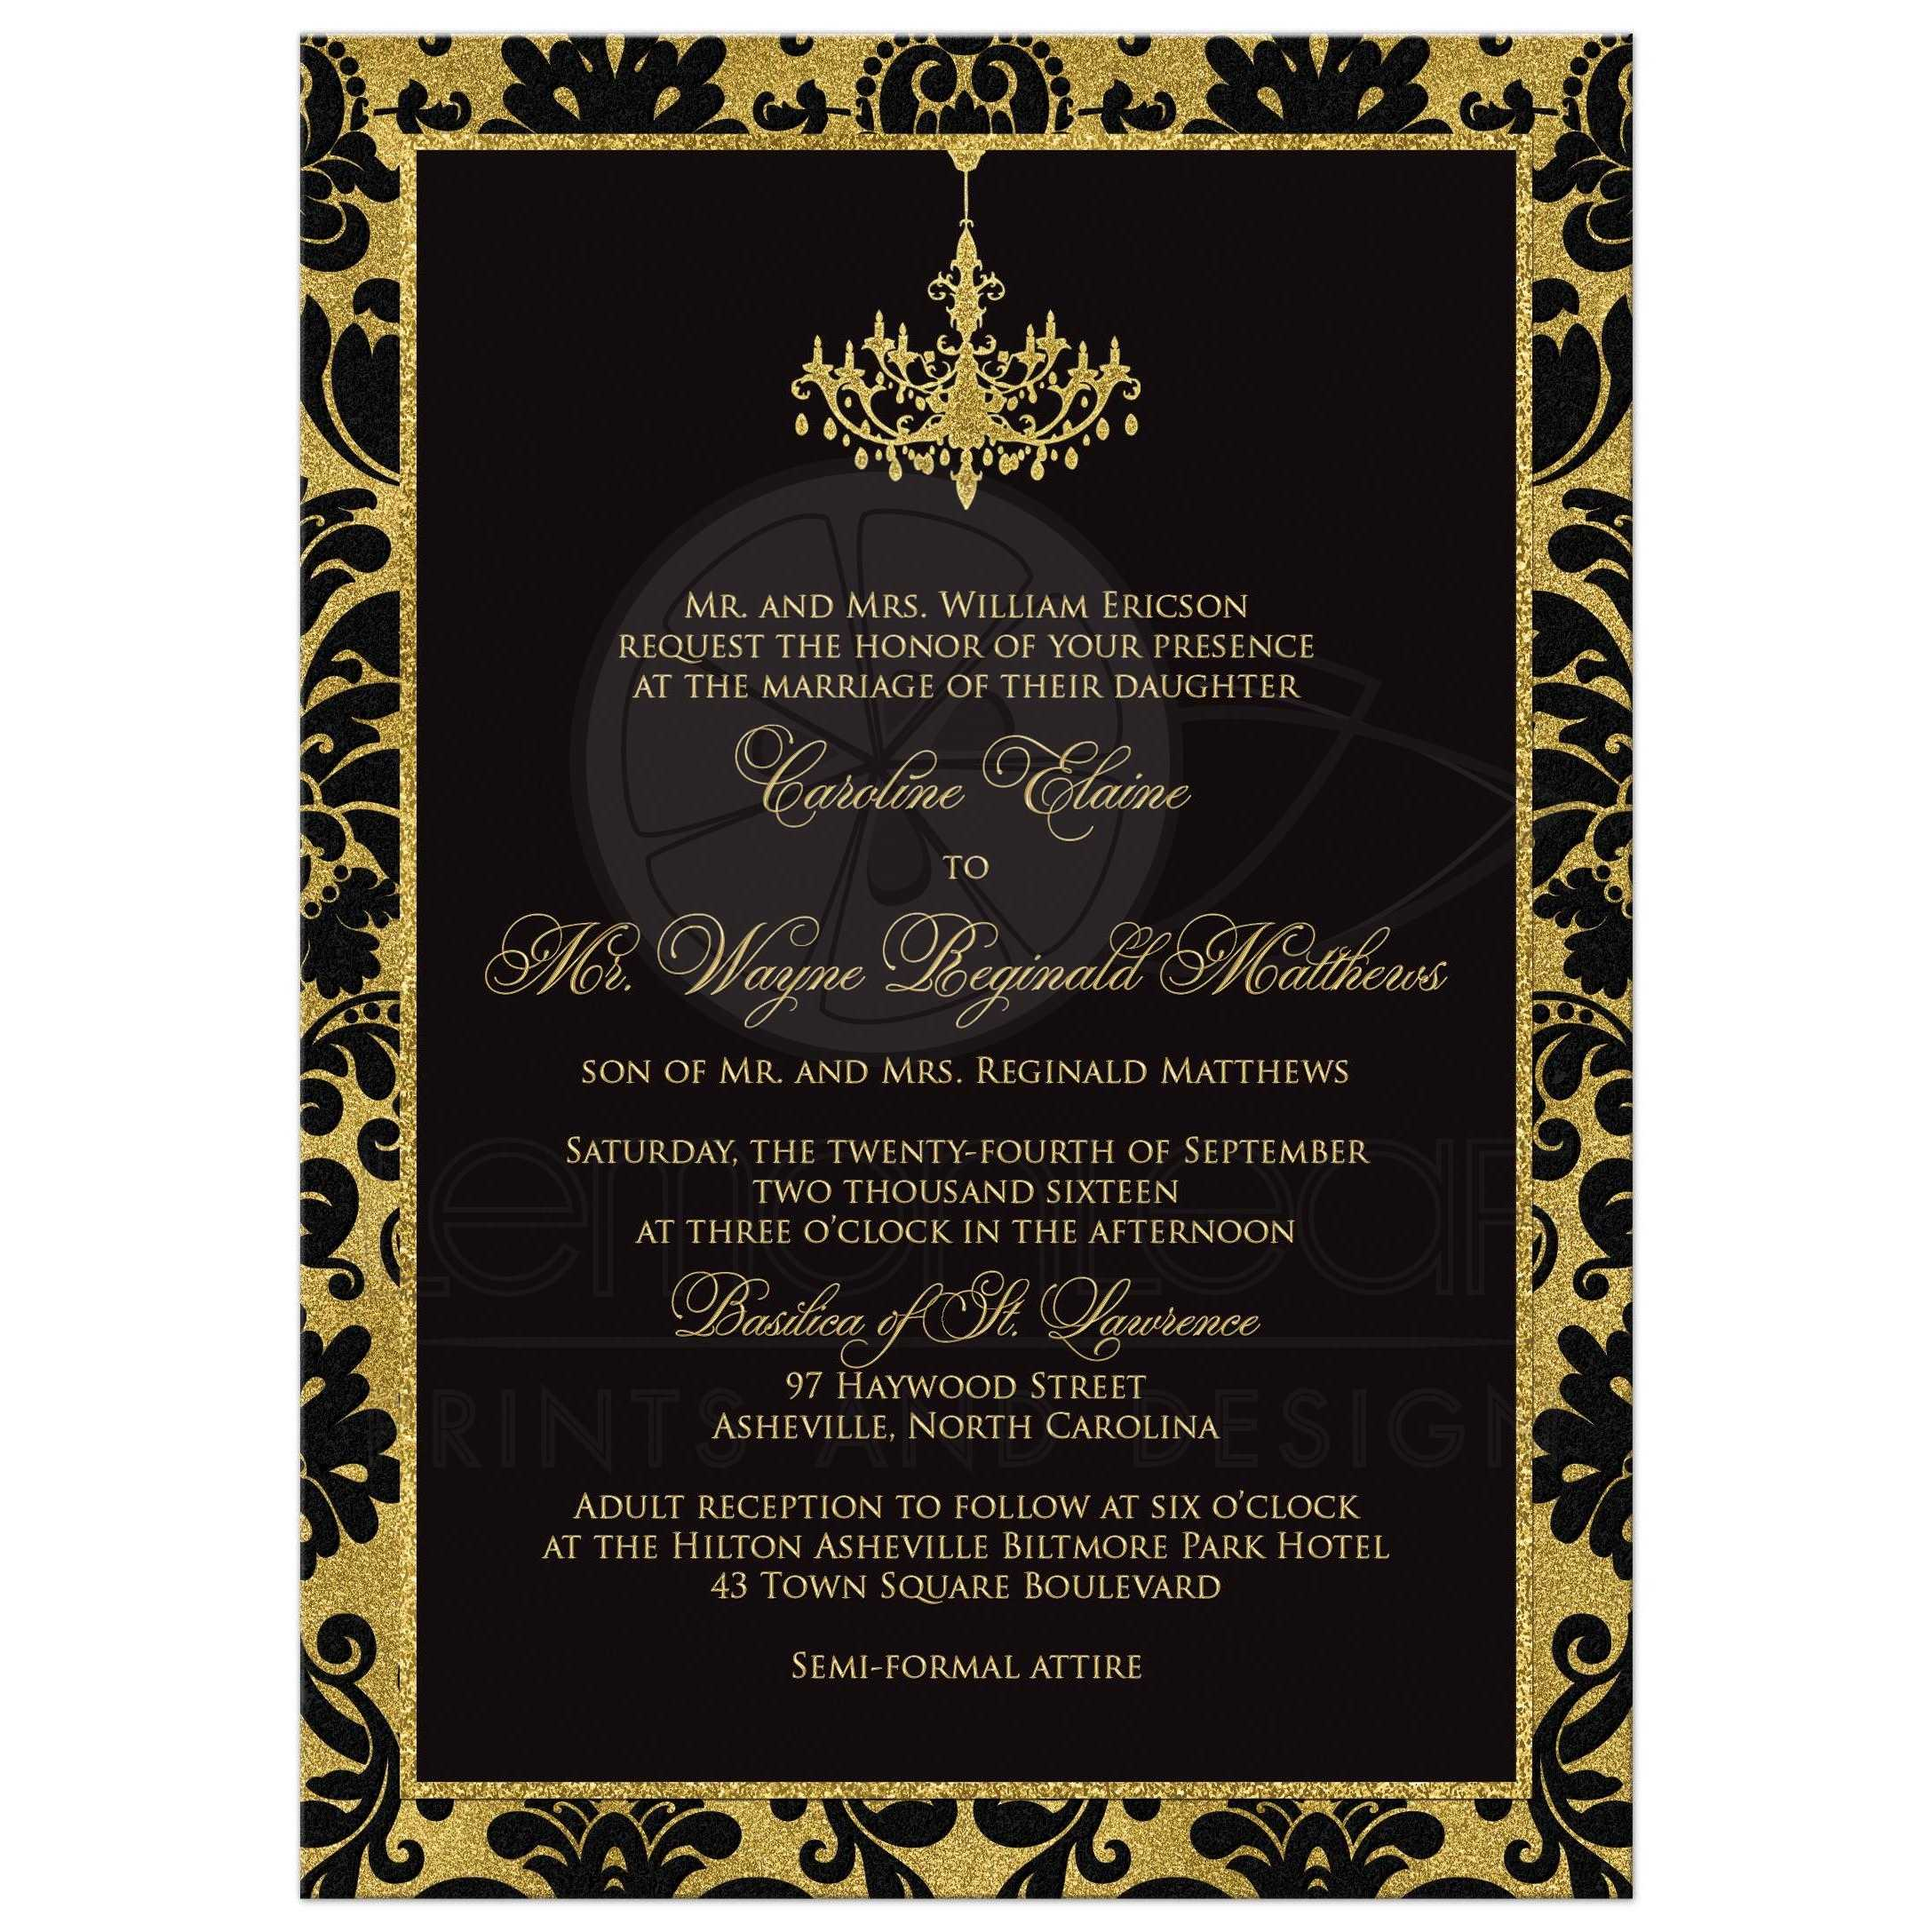 Wedding Invitation Black Damask Faux Gold Foil – Damask Birthday Invitations